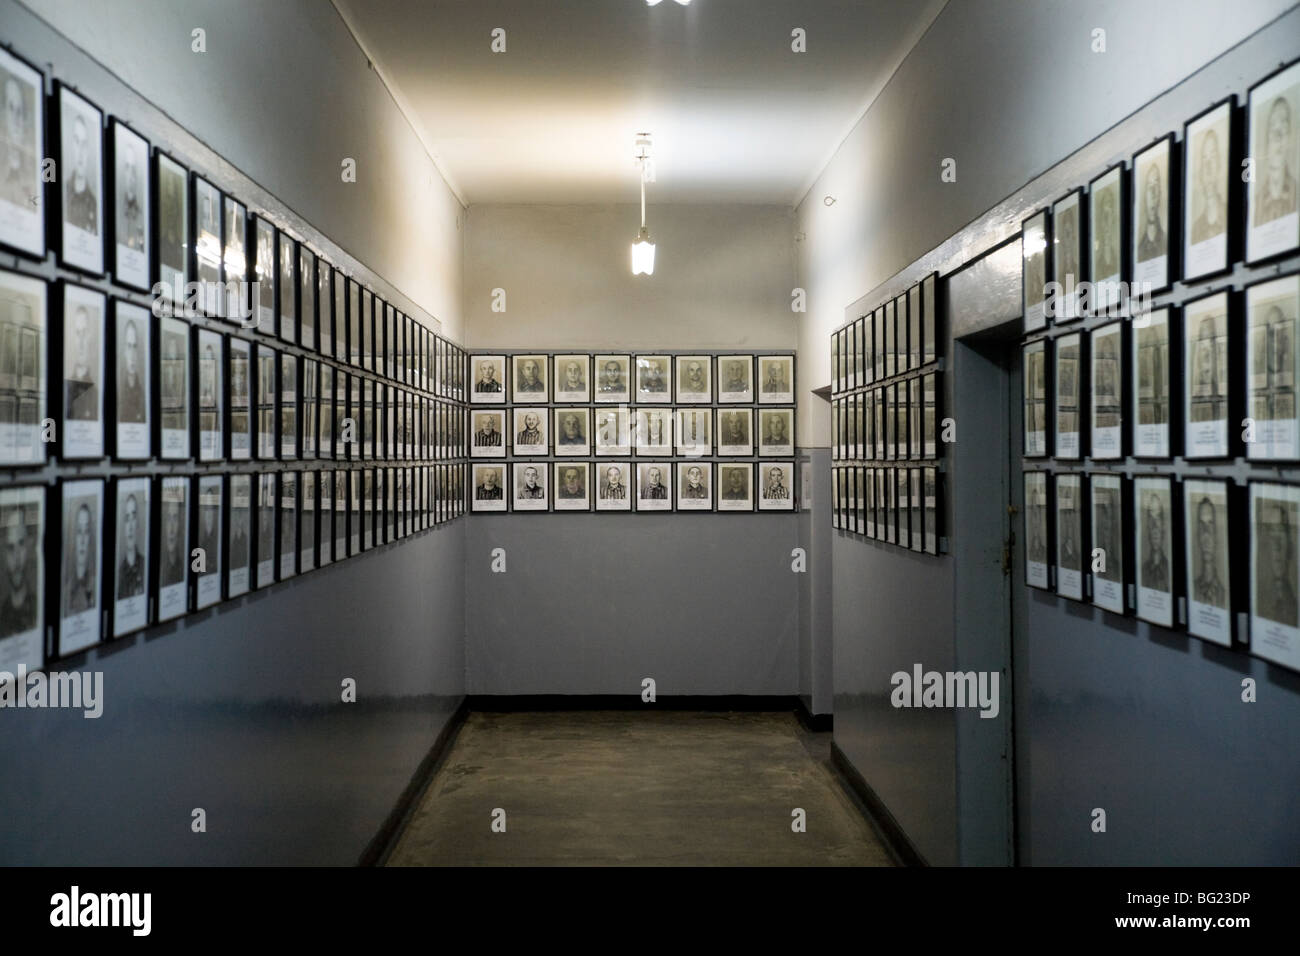 Photographs of prisoners / victims of the Nazis / SS, displayed on the walls of the Auschwitz musuem. Auschwitz - Stock Image